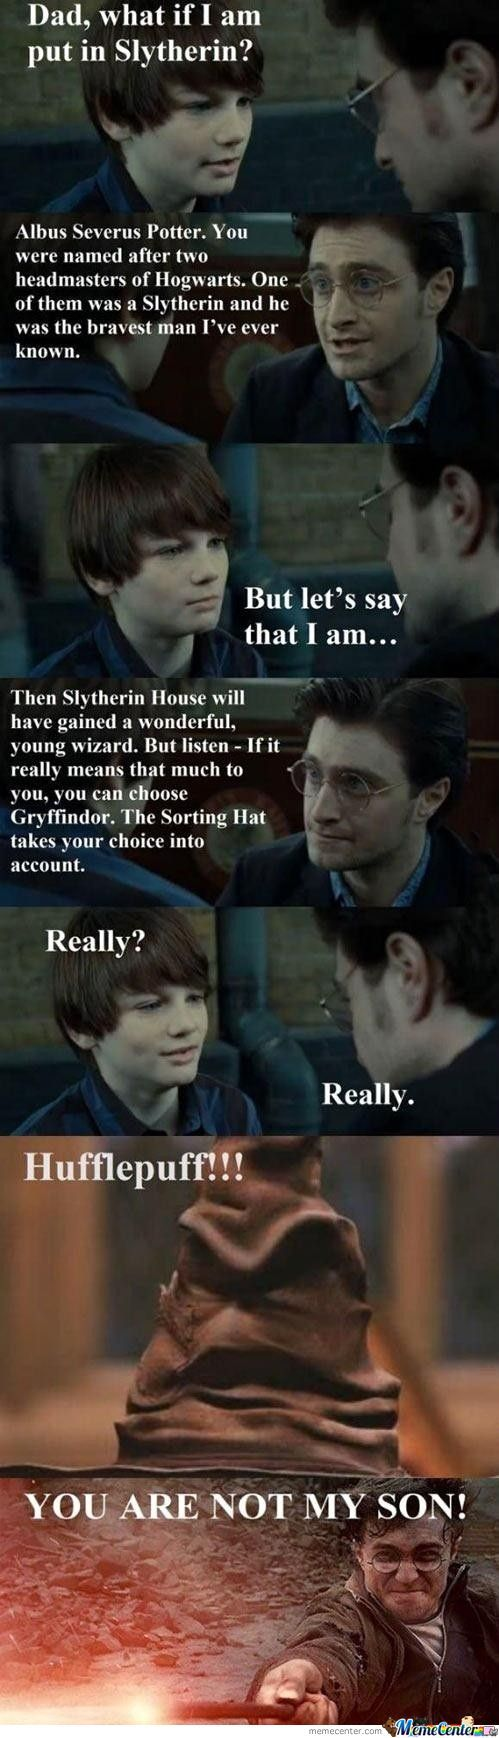 You Have Disgraced The Potter Family!